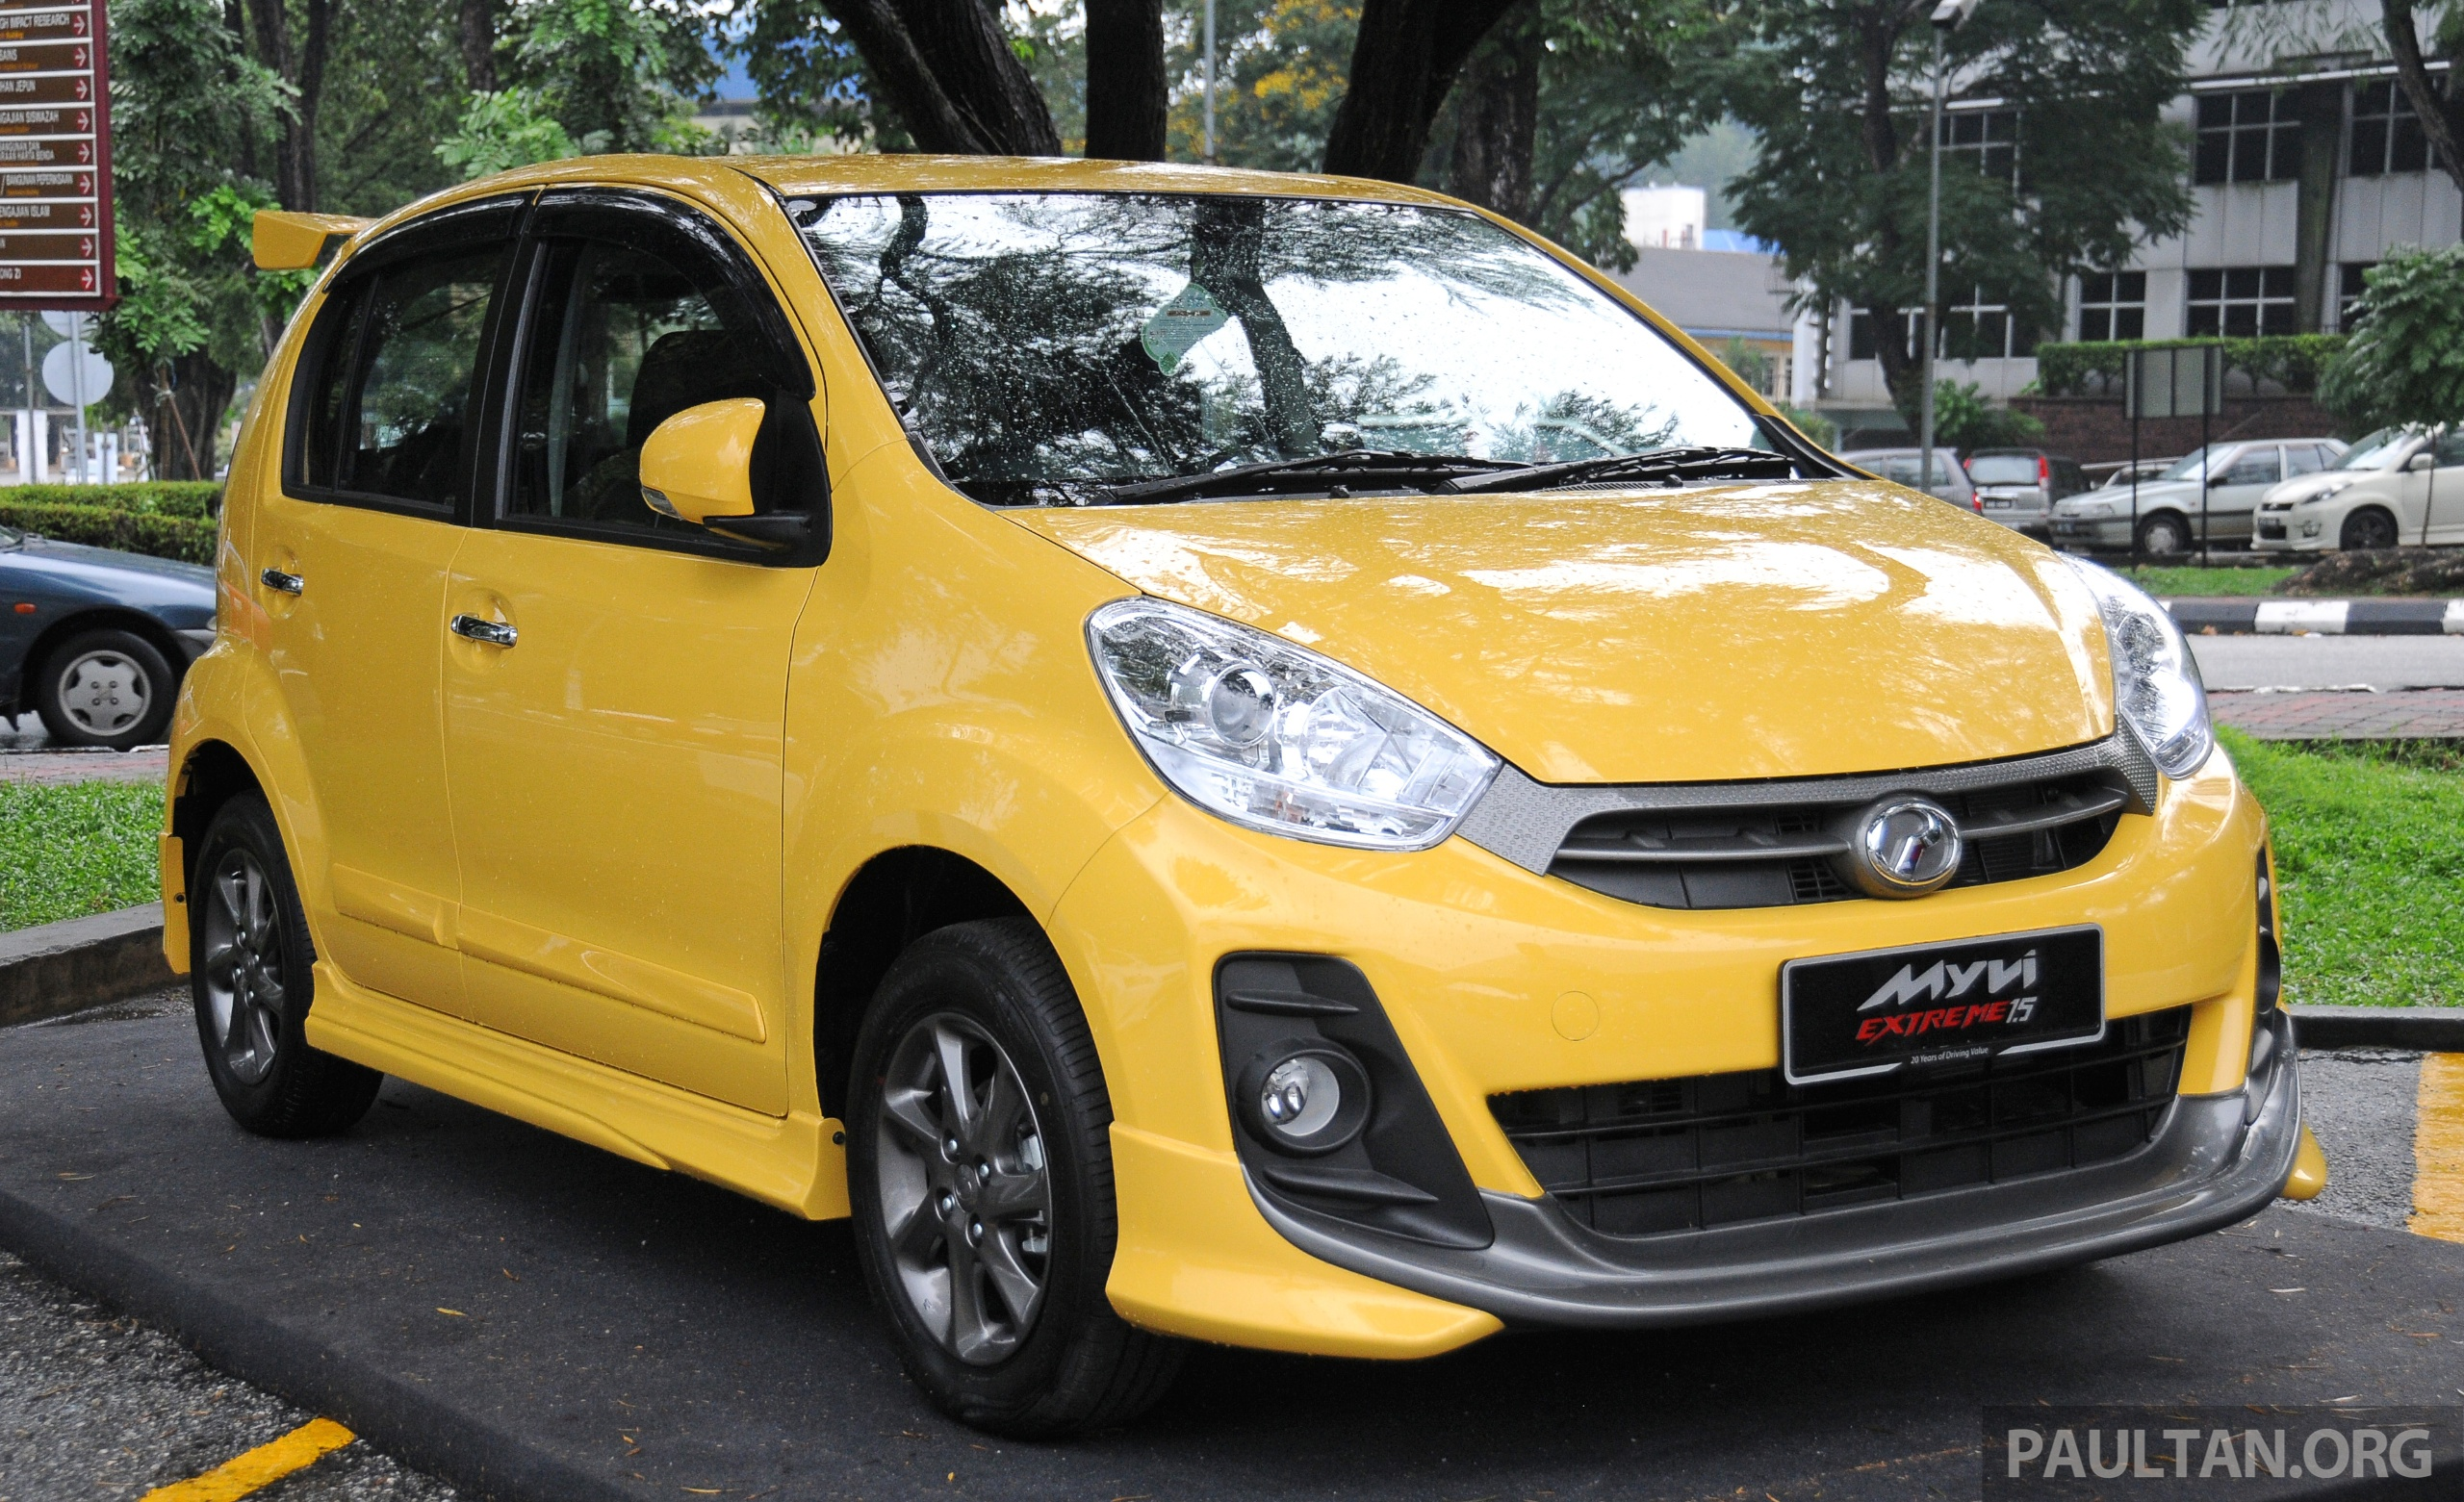 New Sirion 2018 >> Perodua Myvi XT, new Extreme launched: from RM42k Image 240406